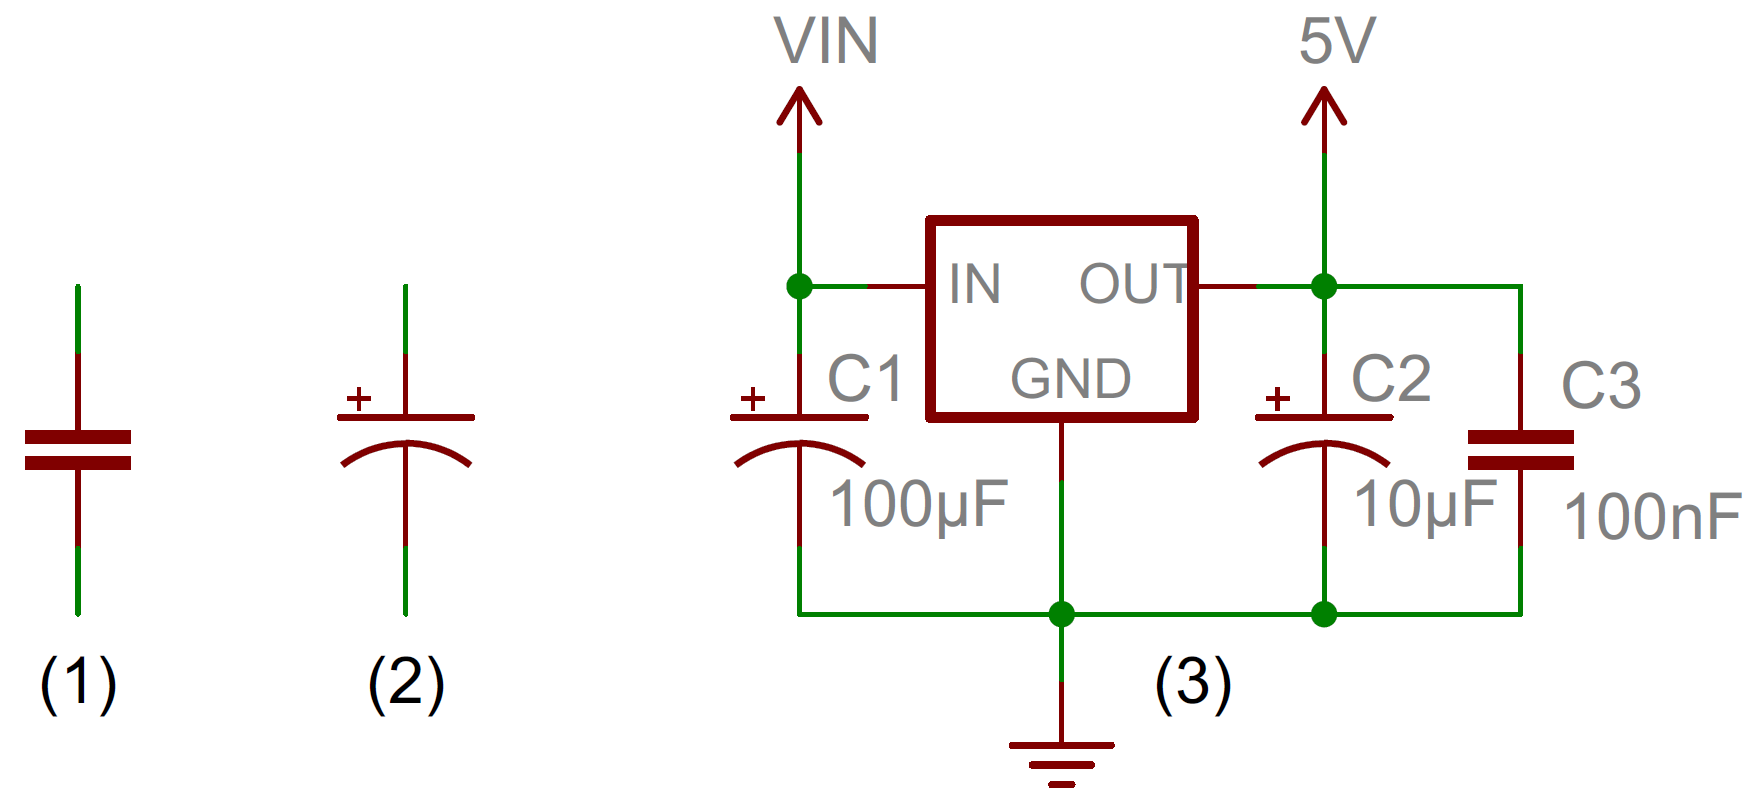 Capacitors Voltage Booster Circuit Electronic Circuits And Diagram Capacitor Symbols